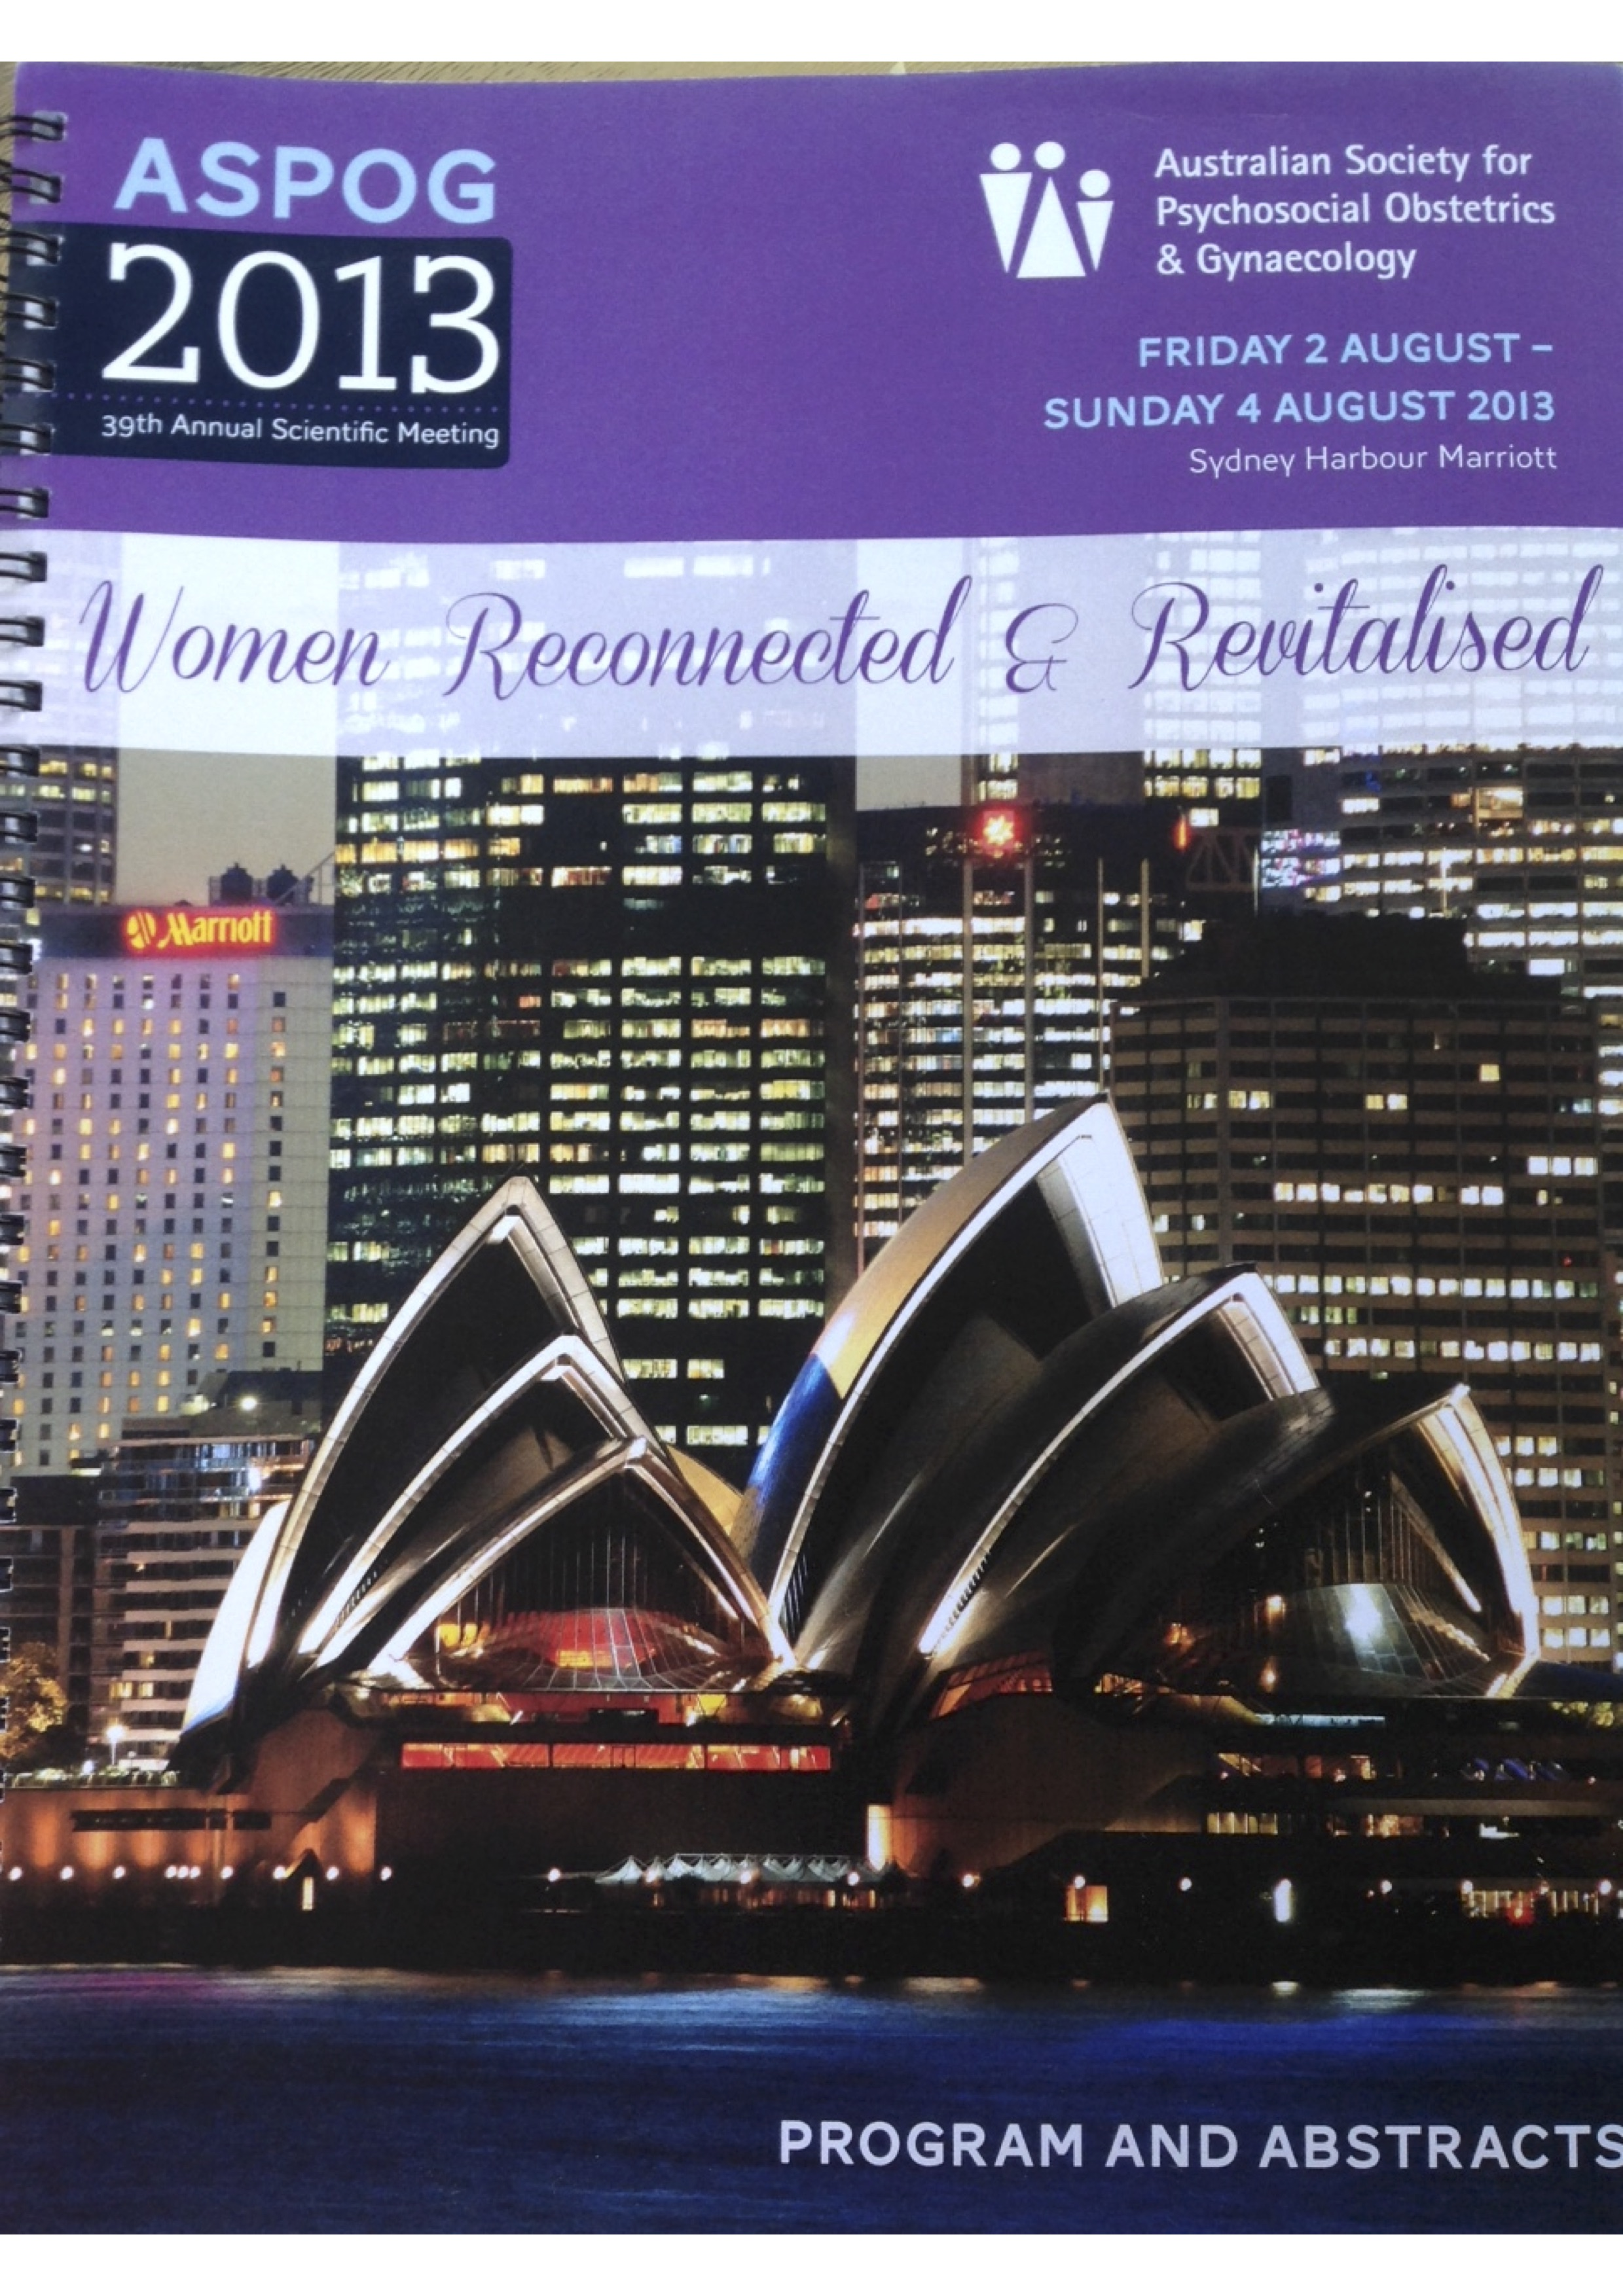 ASPOG 39th Annual Scientific Meeting 2013 - Women Reconnected and Revitalised